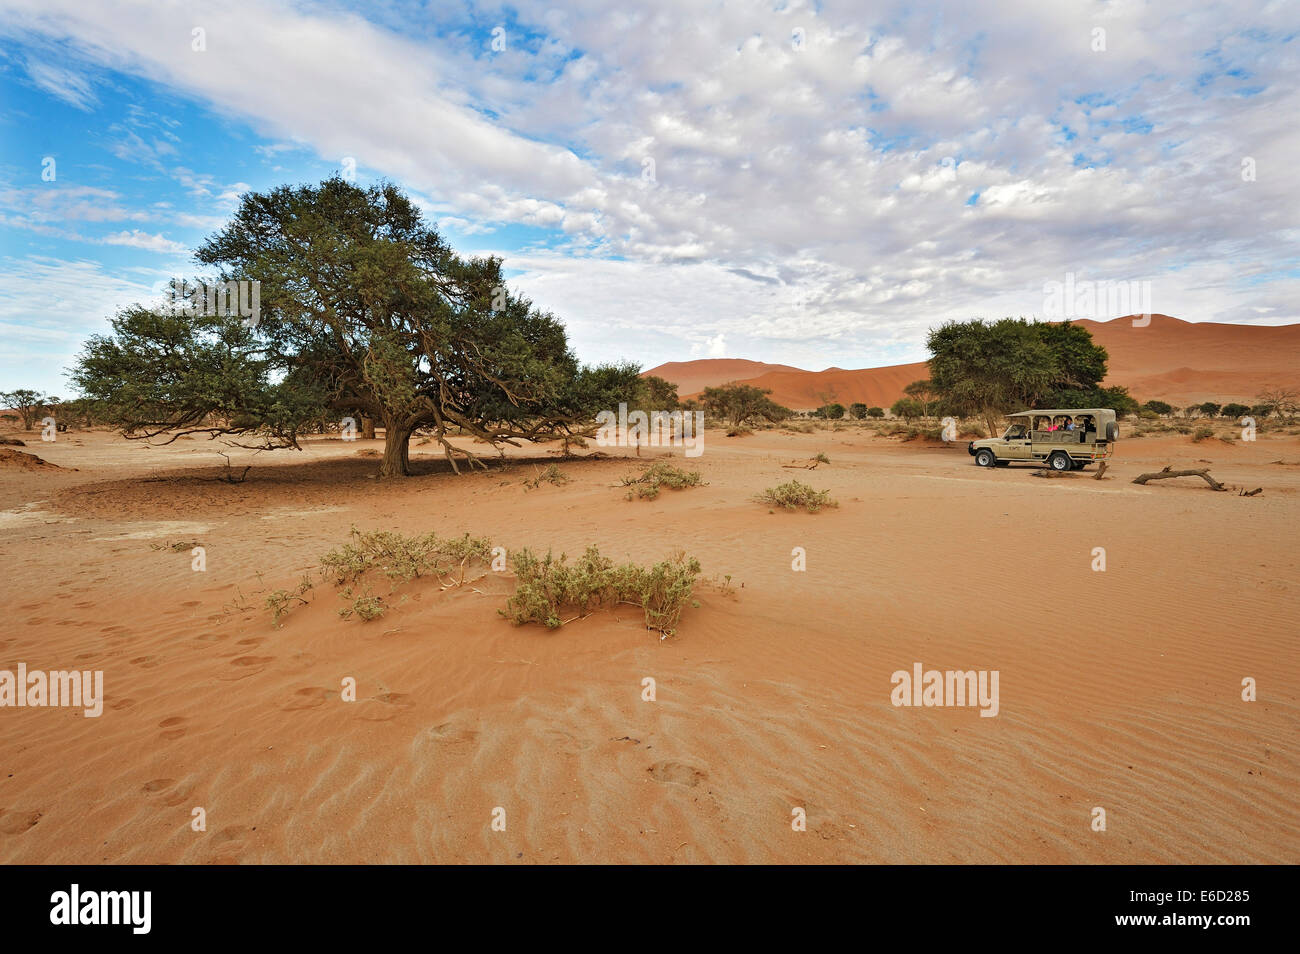 Landscape with Safari car on the dunes of the Sossusvlei, Namibia - Stock Image